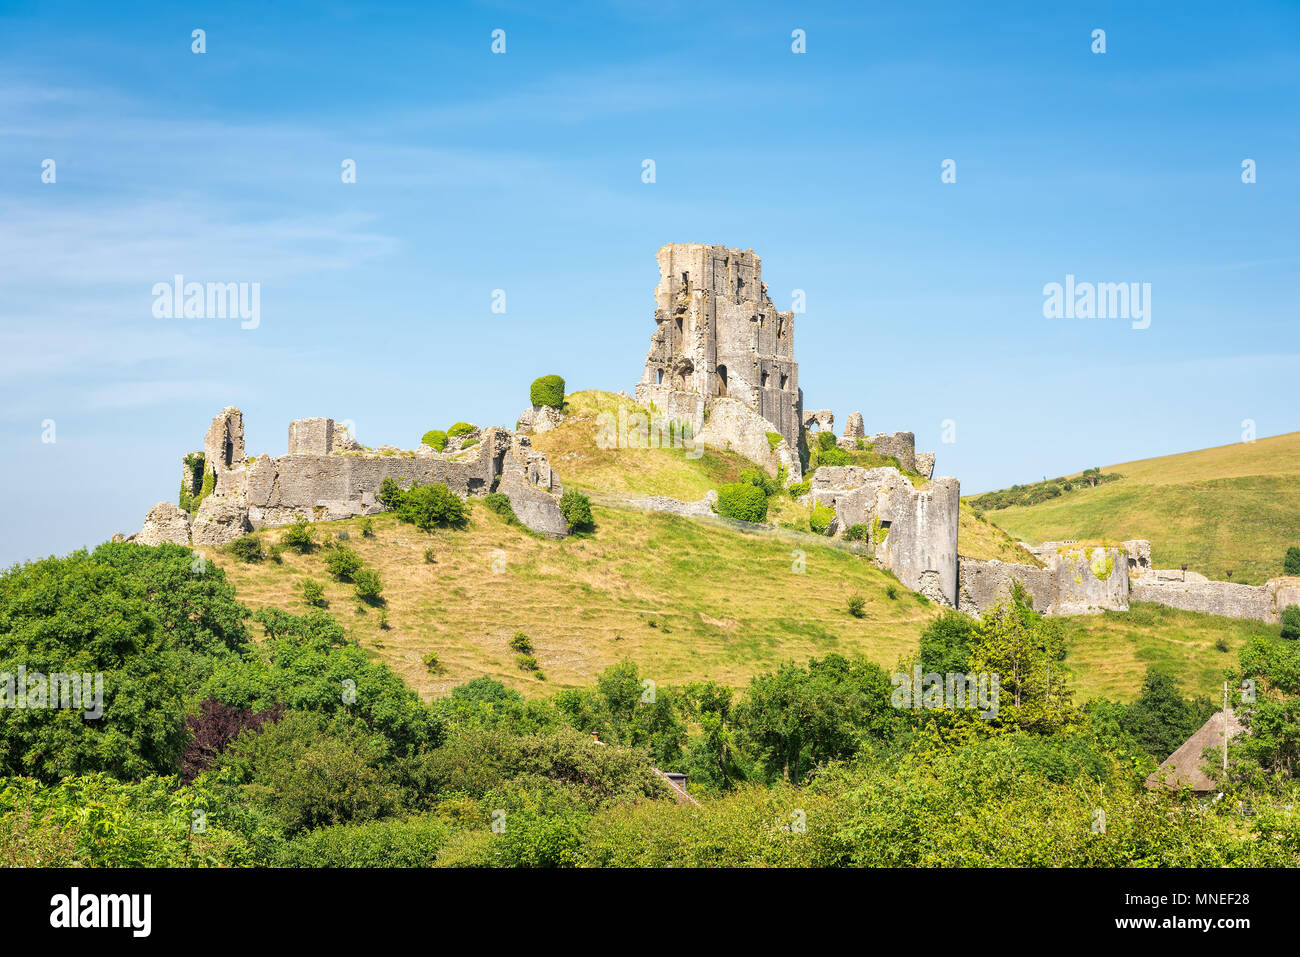 Wareham, United Kingdom - June 20, 2017: Ruins of Corfe Castle, built in medieval times by William the  Conqueror in the Isle of Purbeck in Dorset, vi Stock Photo